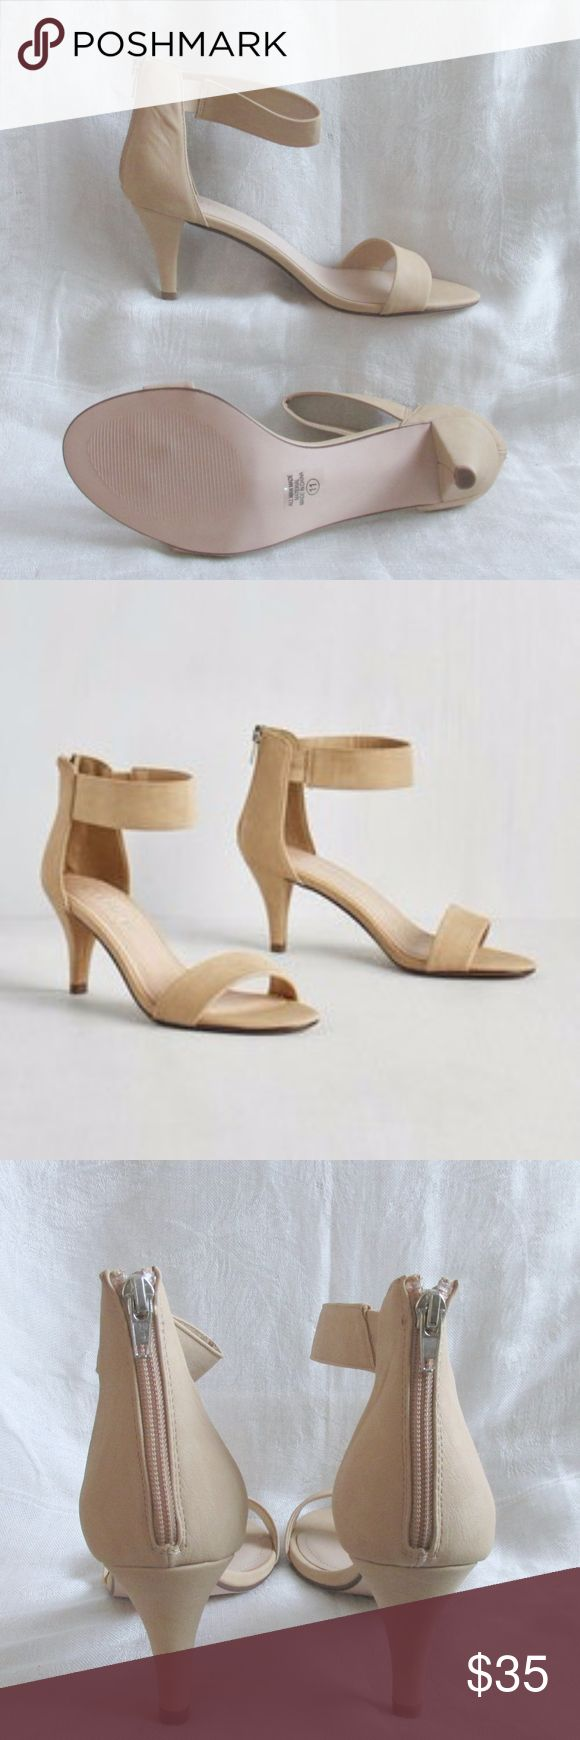 """CITY CLASSIFIED Beige Nude Ankle Strap Heels City Classified Nude Ankle Strap Heels Size 11  Condition: New In Box Brand: City Classified  Type: Sandal Style: Ankle Strap Color: Nude/Beige Features: Thick ankle strap Size: 11 Heel Height: appx 2.75"""" Materials: Man made materials   Closet Note: A very popular style but without the ankle breaking heel height. Has a thick ankle and toe strap. The ankle strap zips up the back  DD 14.7.17 City Classified Shoes Heels"""